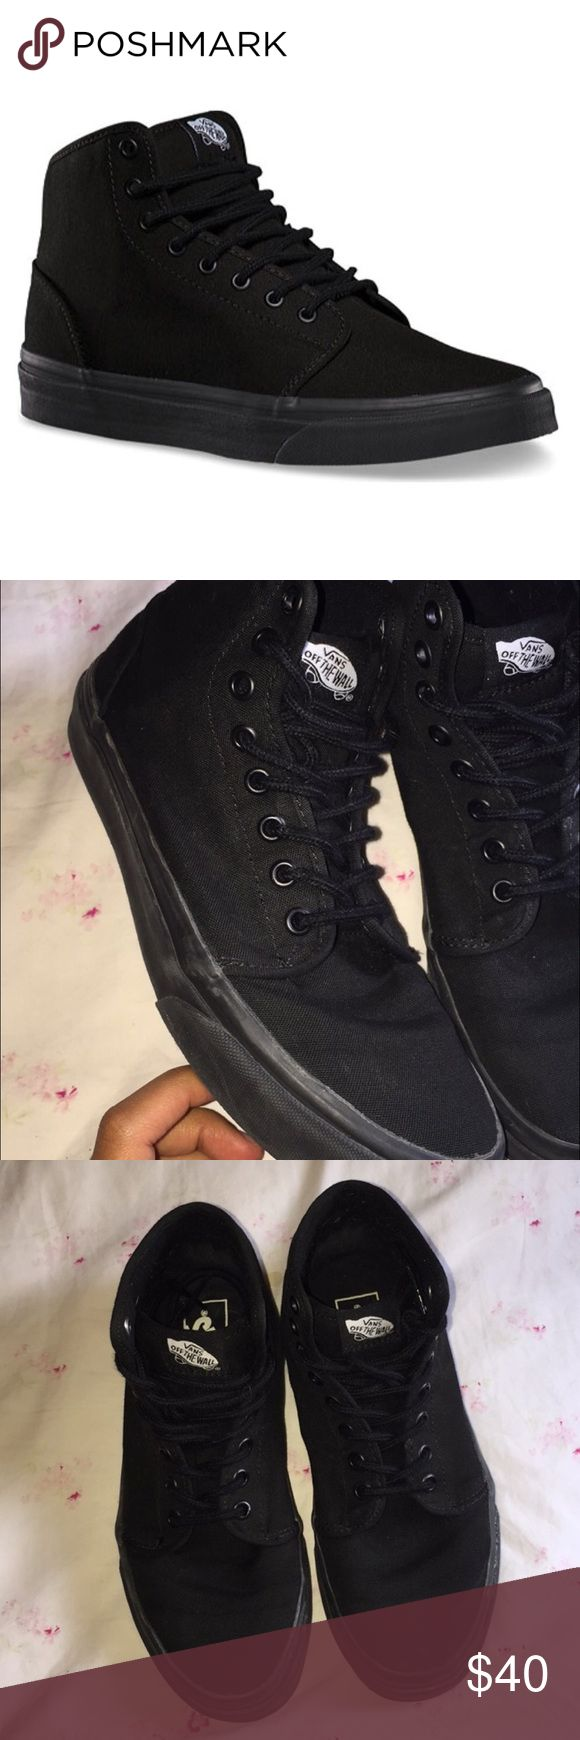 All black high top vans Only worn once, bought new laces for them. Will take offers Vans Shoes